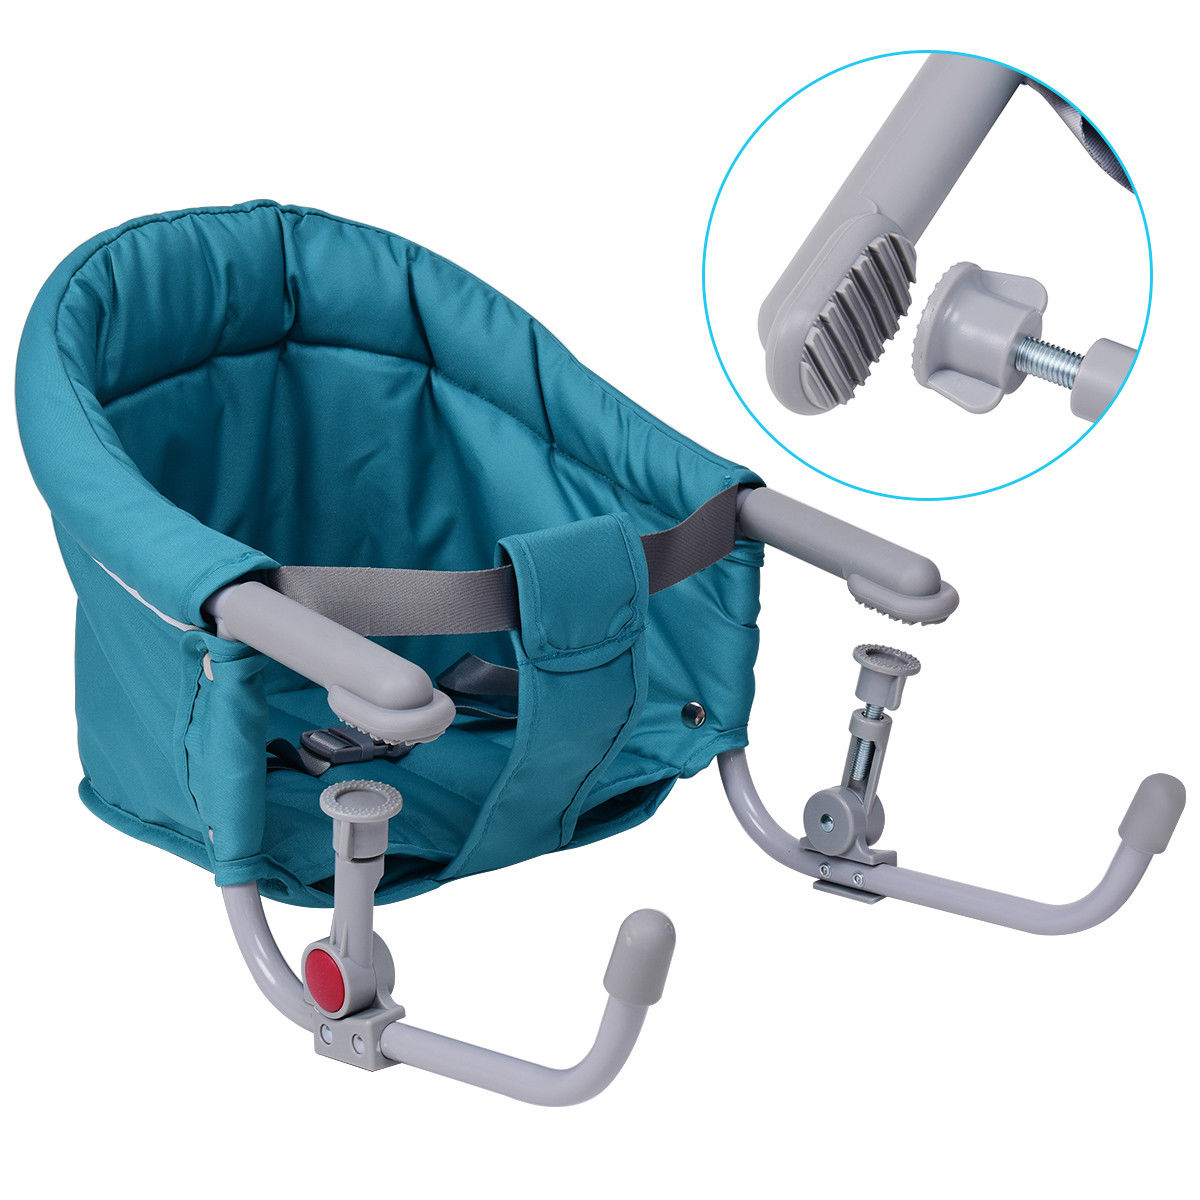 Gymax Green Foldable Baby Hook On Chair Booster Fast Table Chair Portable Carrying Bag